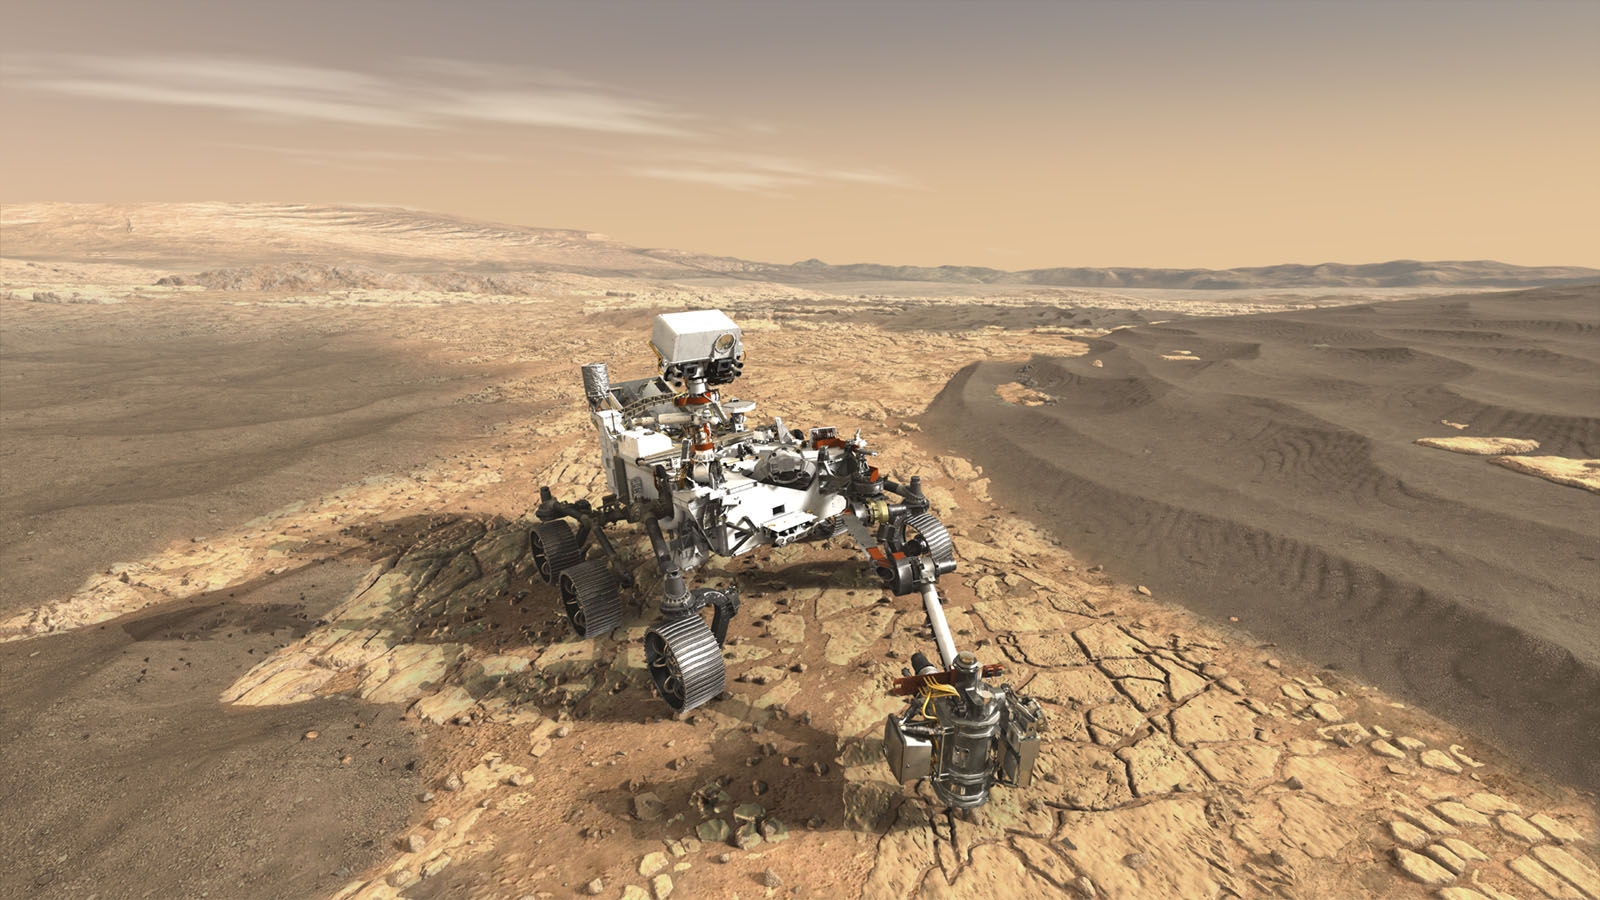 This artist's concept depicts NASA's Mars 2020 rover on the surface of Mars. The mission takes the next step by not only seeking signs of habitable conditions on Mars in the ancient past, but also searching for signs of past microbial life itself.